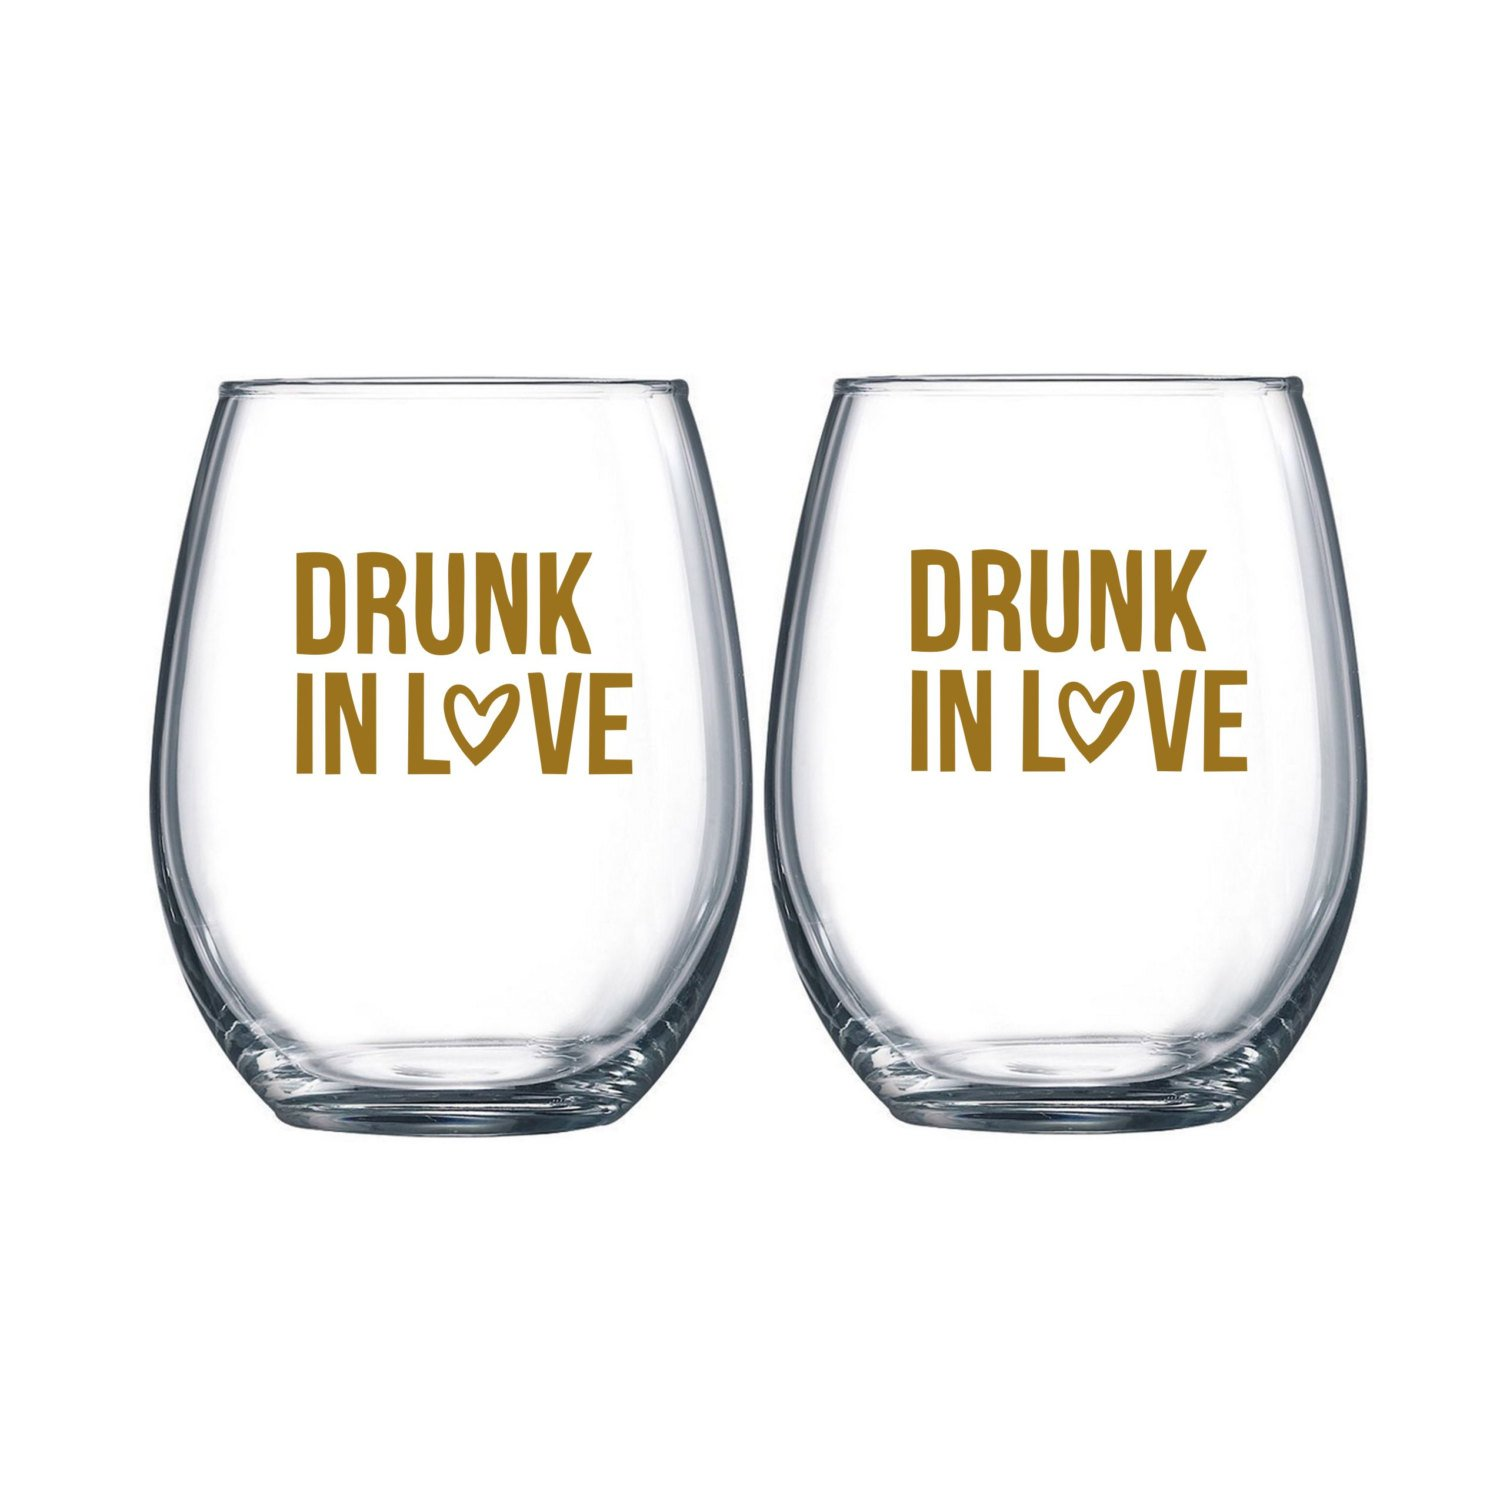 Drunk In Love Stemless Wine Glass Set of 2 Wine Glass Wedding Favor Drunk On Love His and Hers Wine Glasses Bridal Shower Favor